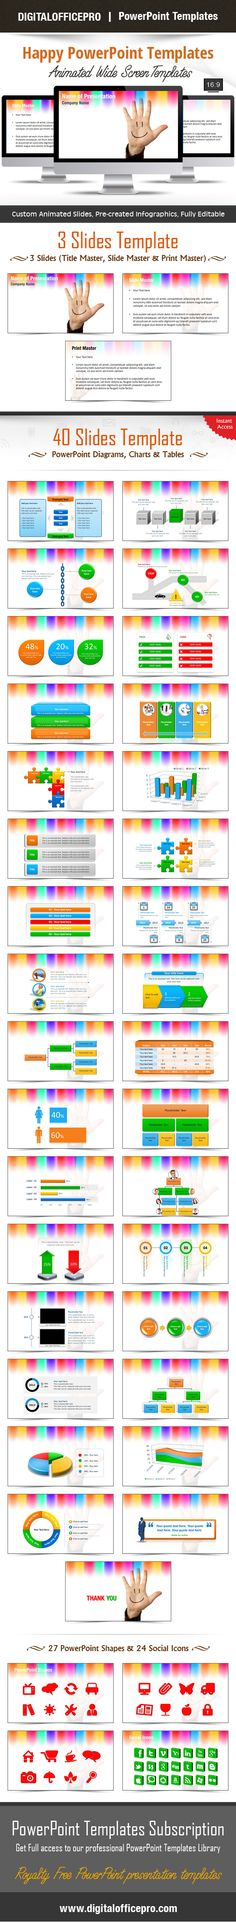 Impress and Engage your audience with Happy PowerPoint Template and Happy PowerPoint Backgrounds from DigitalOfficePro. Each template comes with a set of PowerPoint Diagrams, Charts & Shapes and are available for instant download.